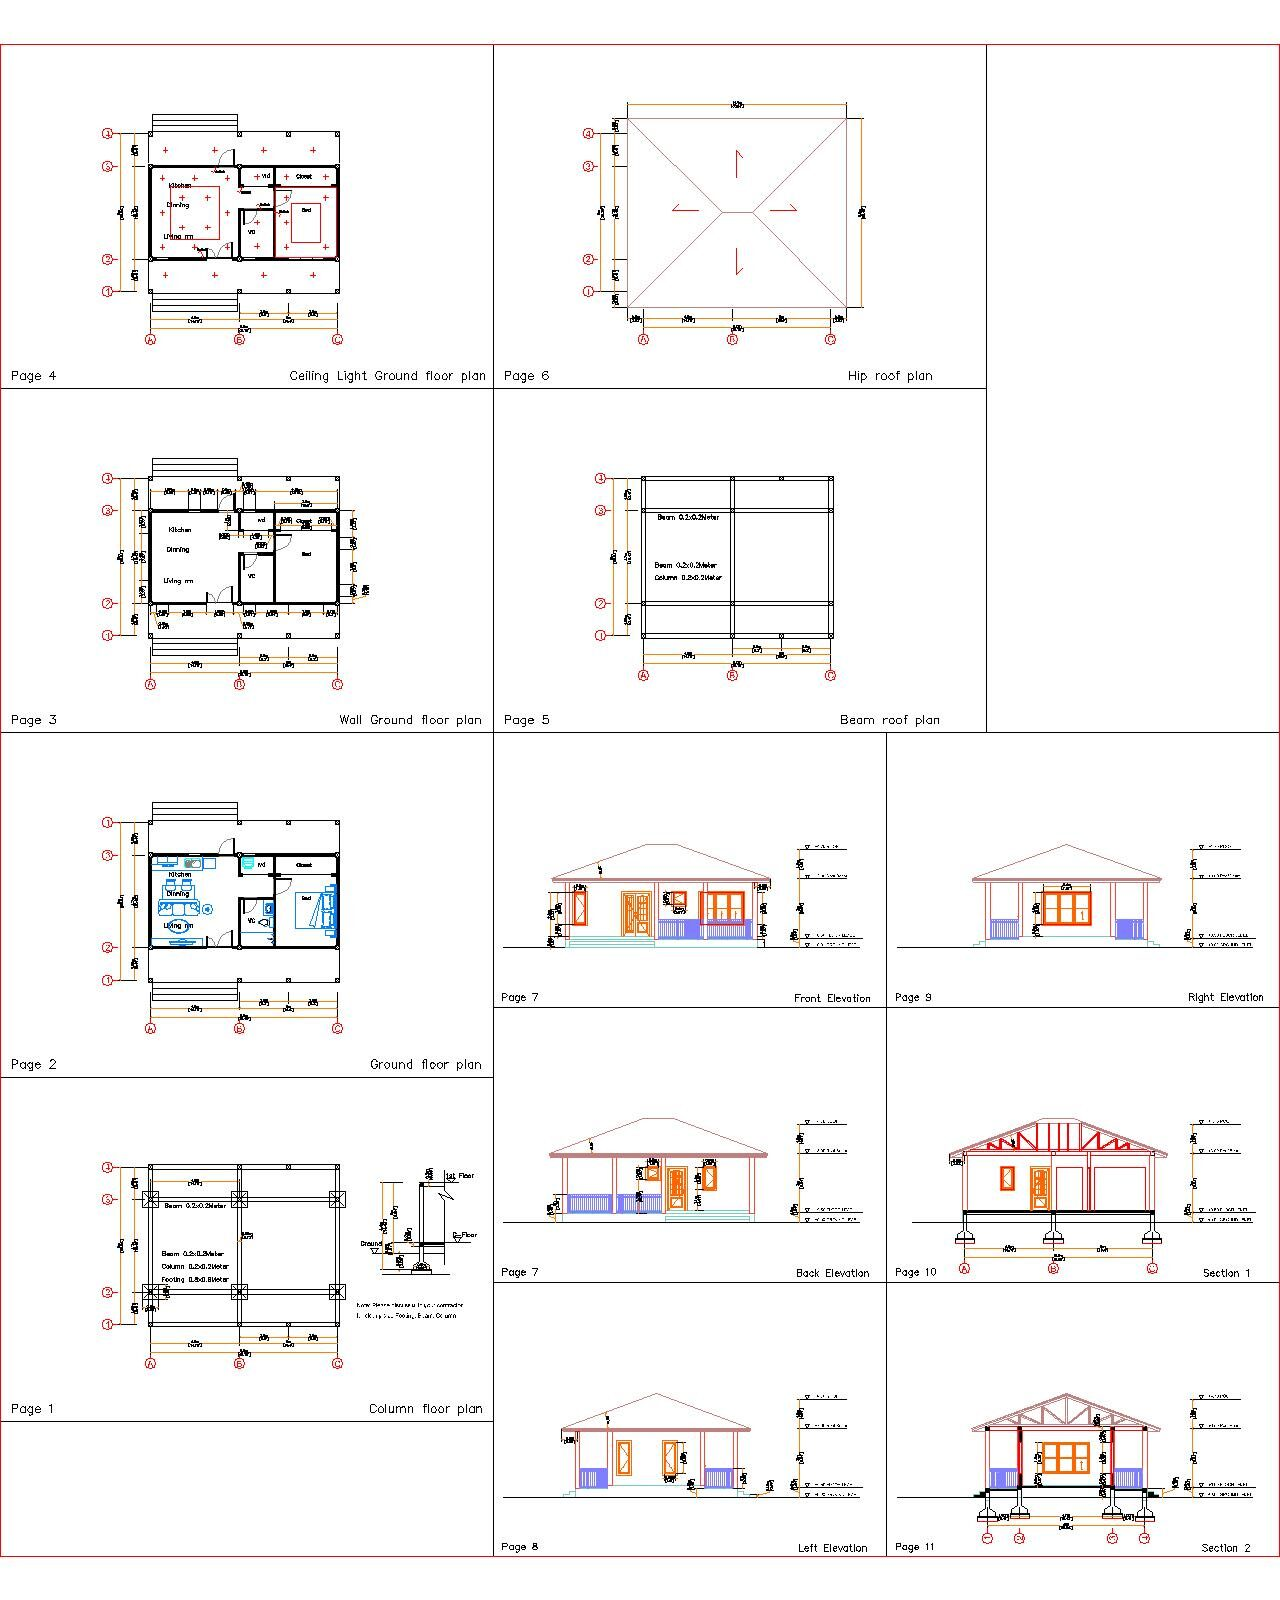 32x16 House Plans you will recieved